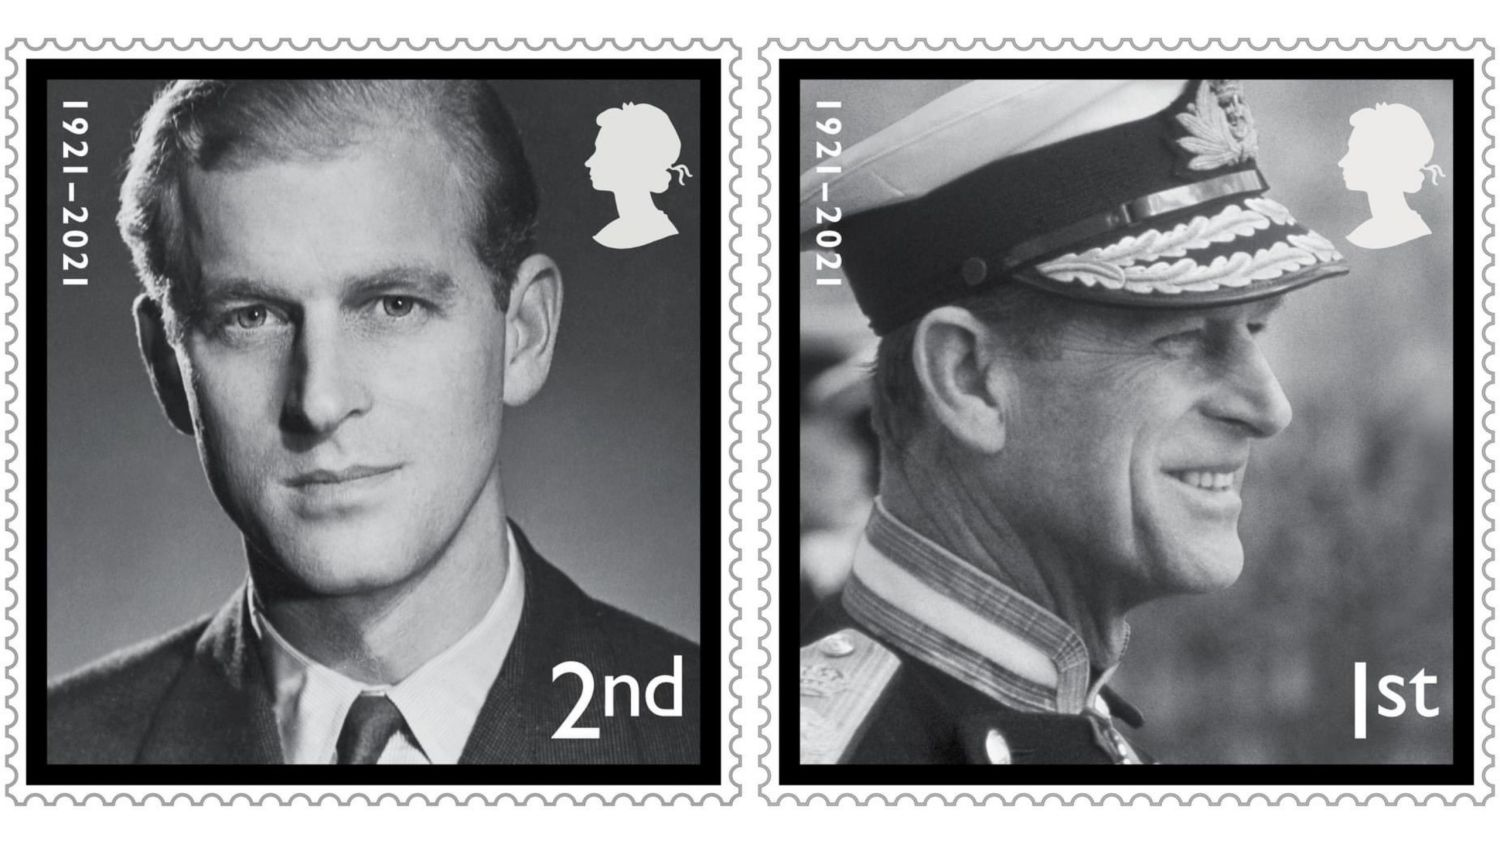 The first stamp features a portrait of Prince Philip as a young man, taken by the photographer Baron, while the second shows him at (Royal Mail).